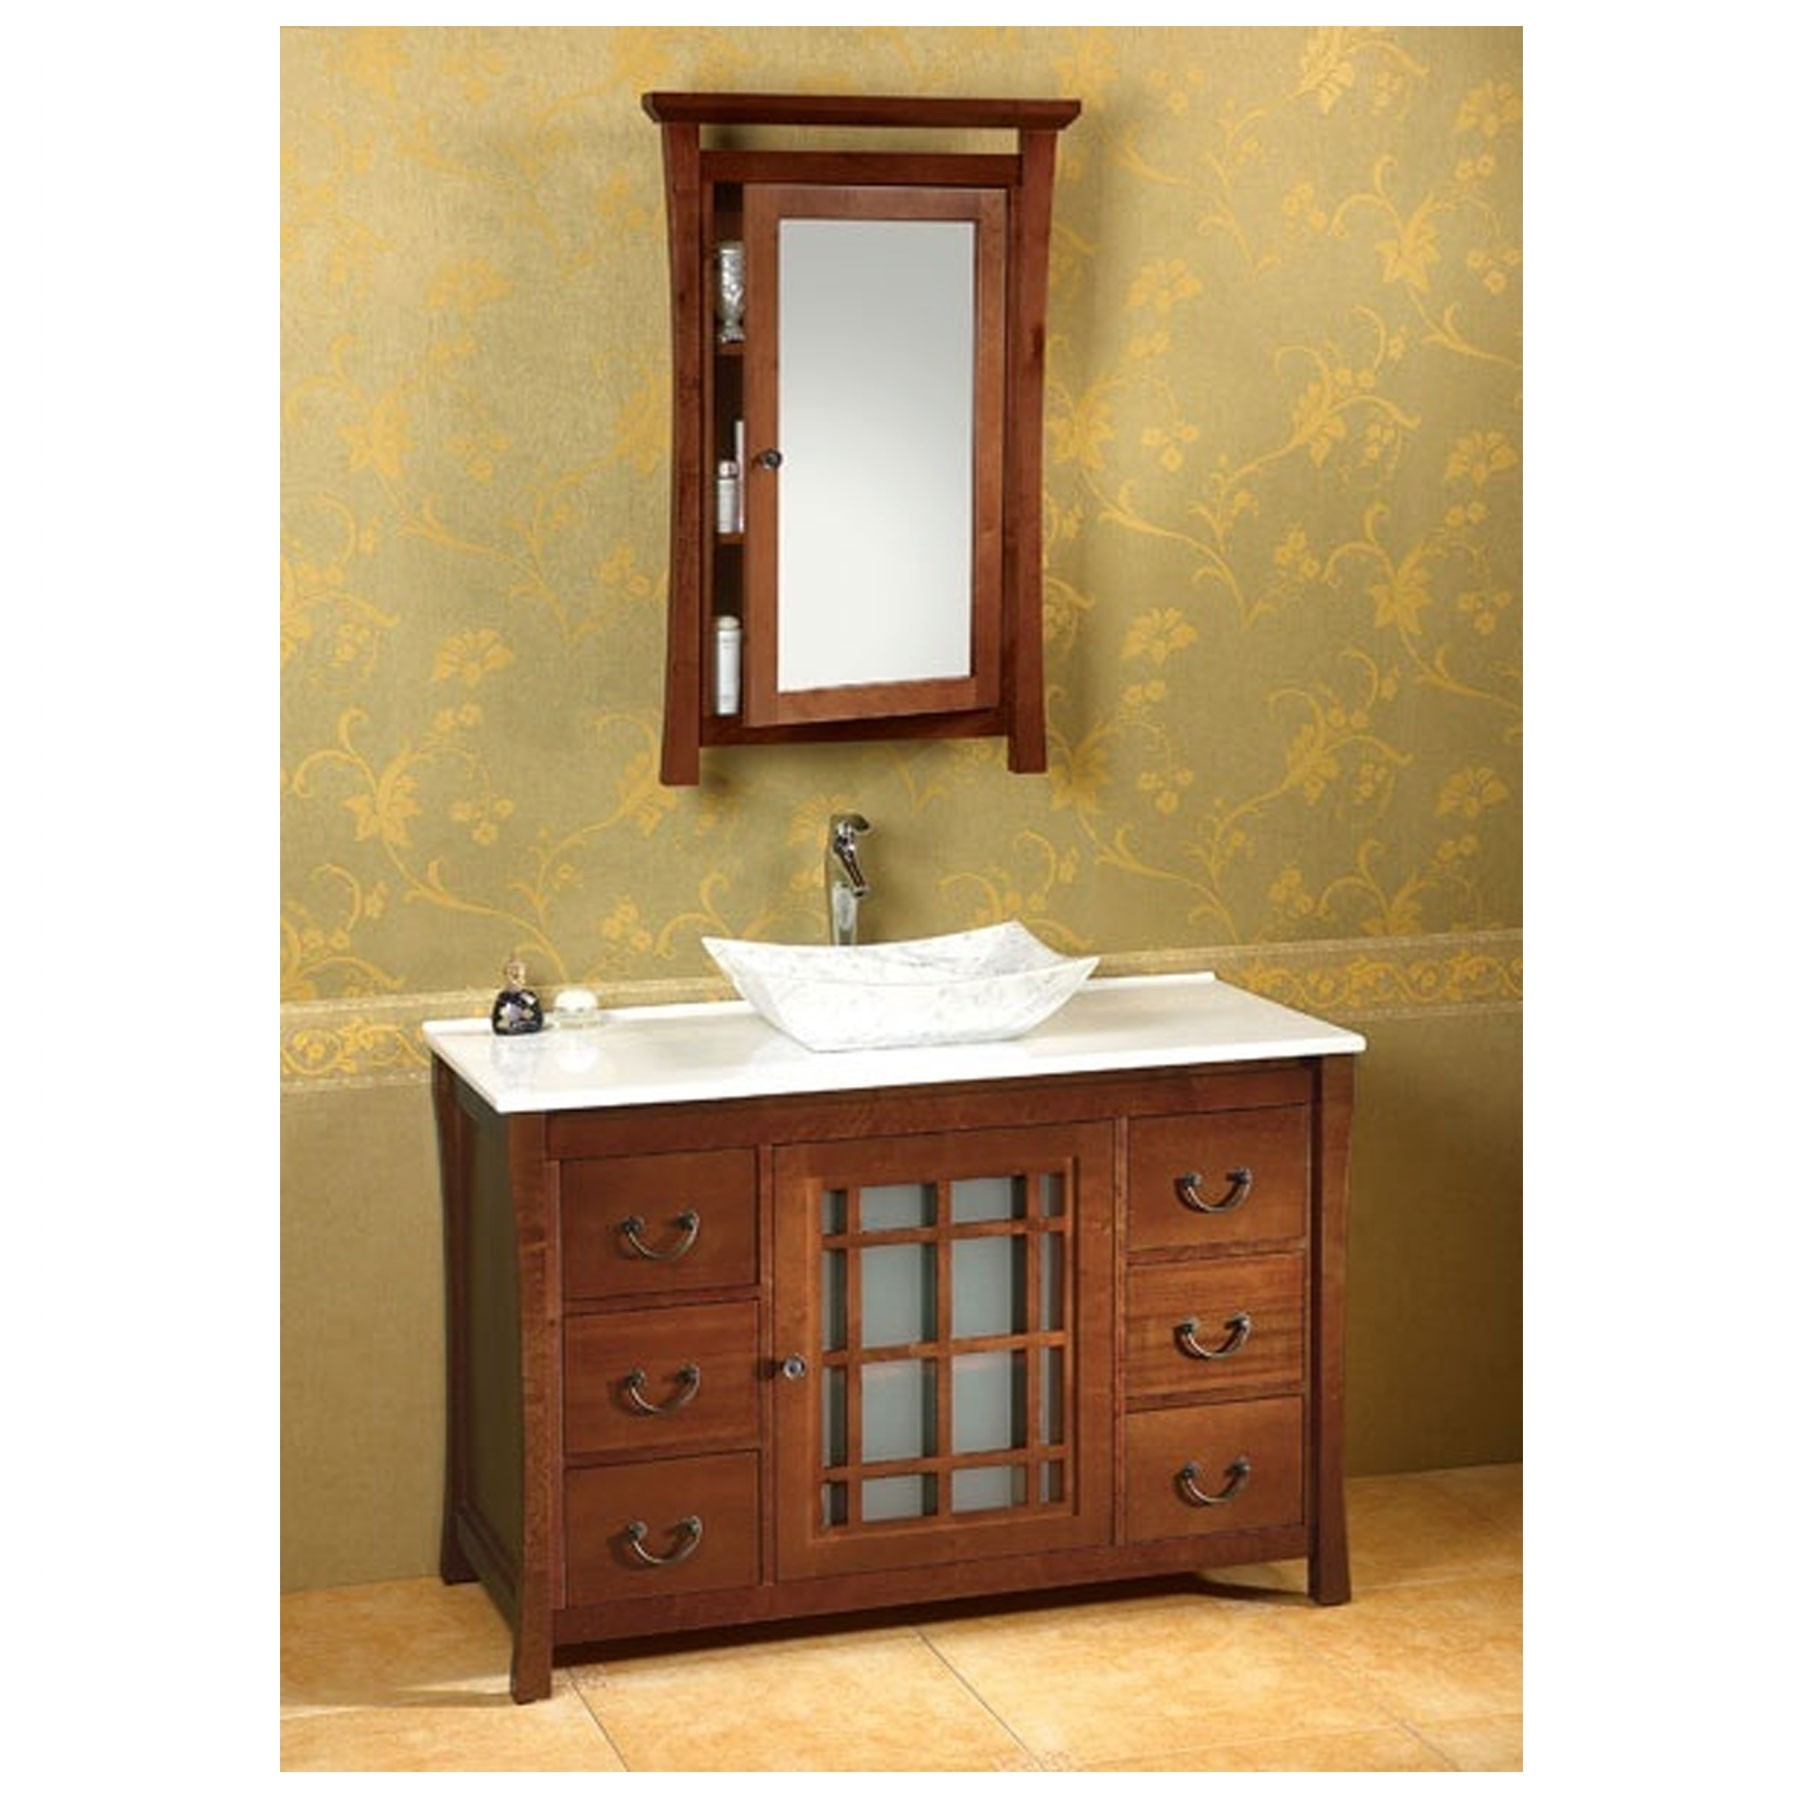 Sachi 25 W X 39 H Wood Framed Medicine Cabinet With Mirror And Shelf